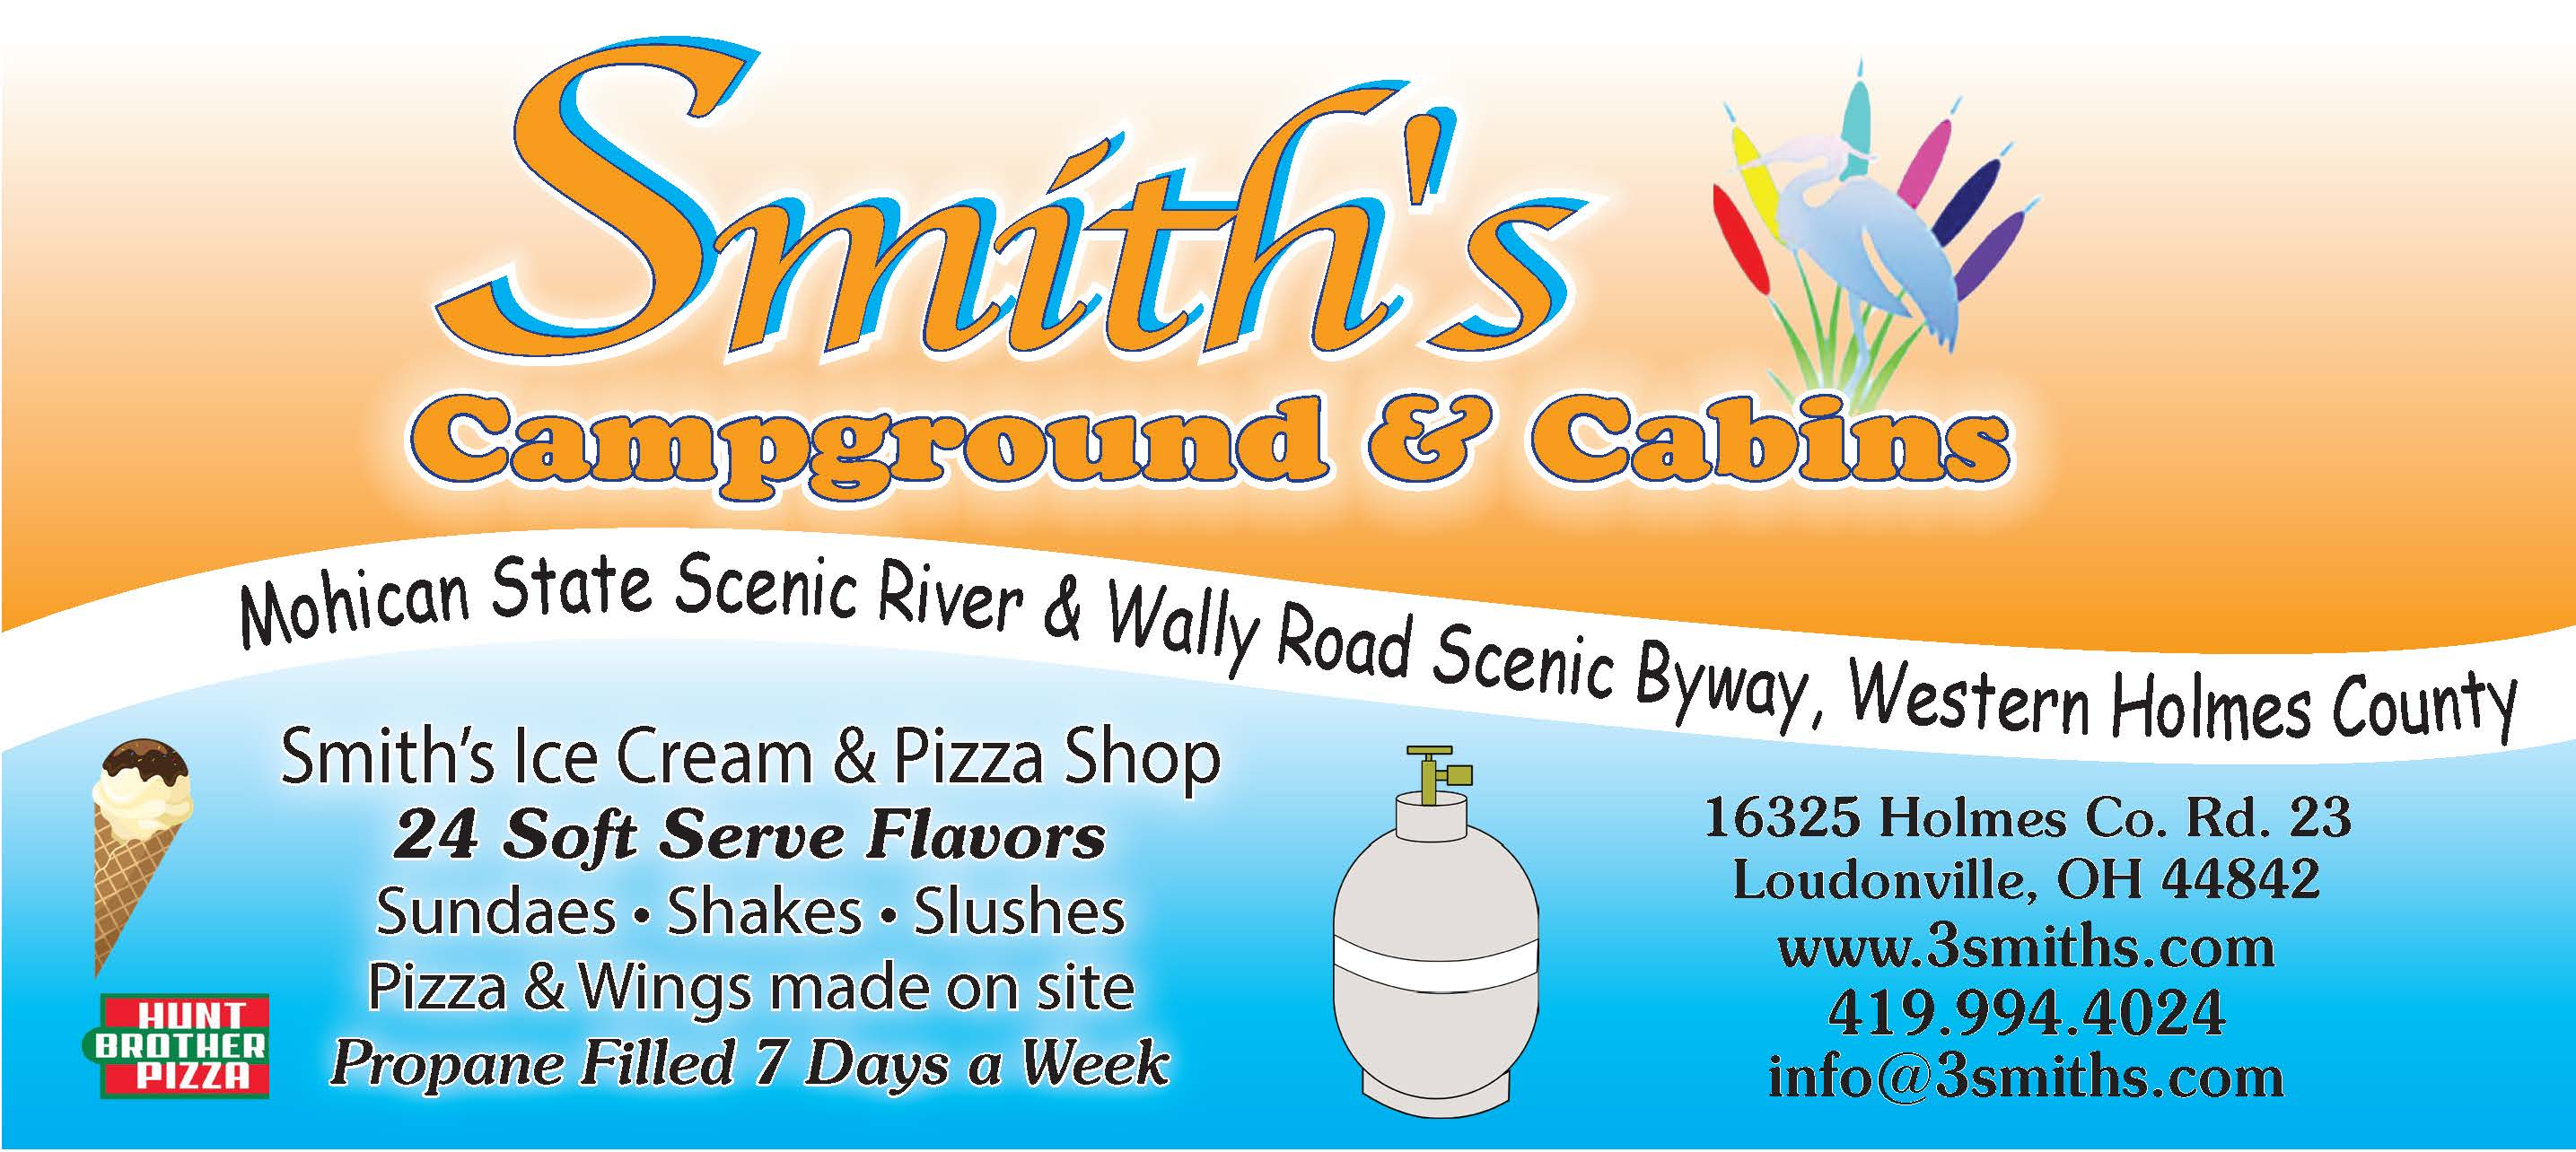 SmithsCampground